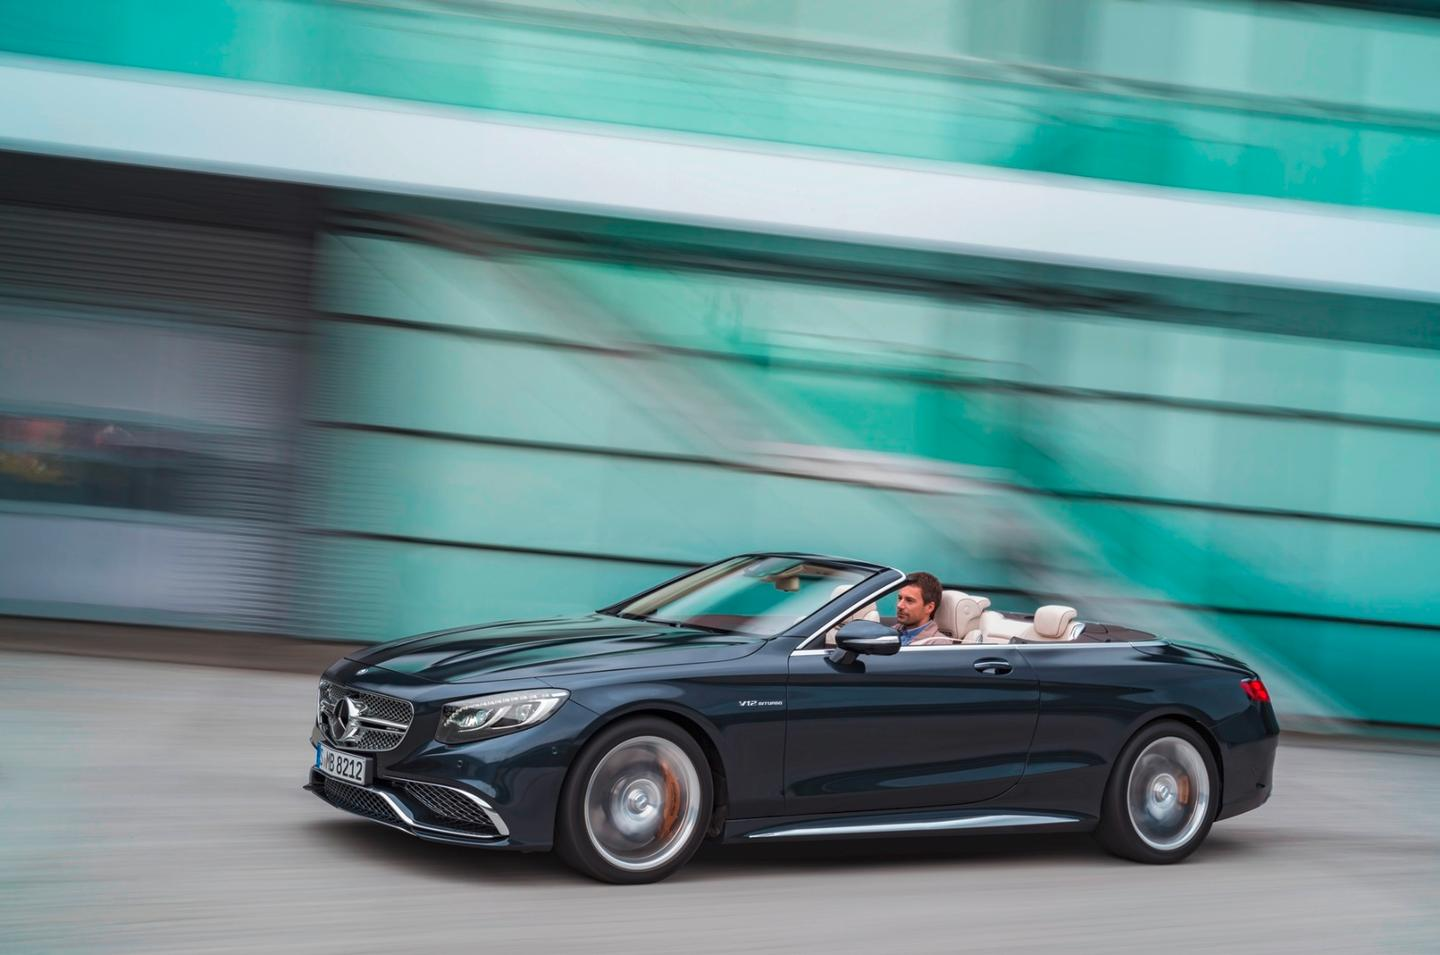 The S 65 Cabriolet has a top speed of to 250 km/h (155 mph)